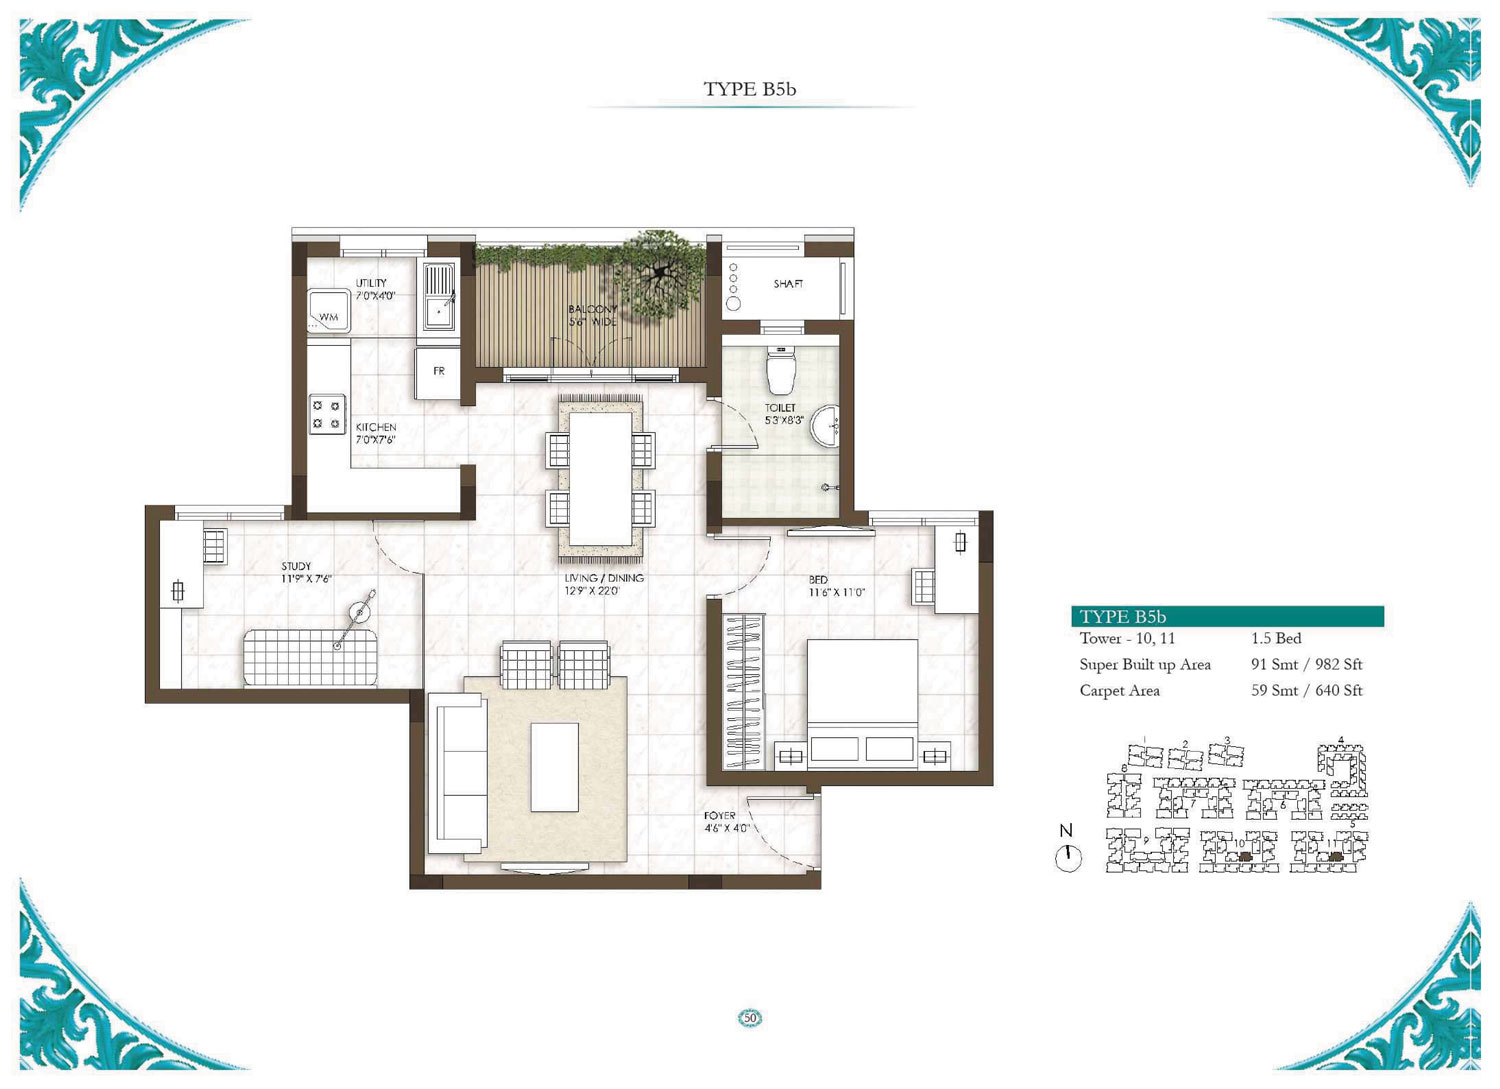 Type B5B - 1 Bed - 982 Sq Ft